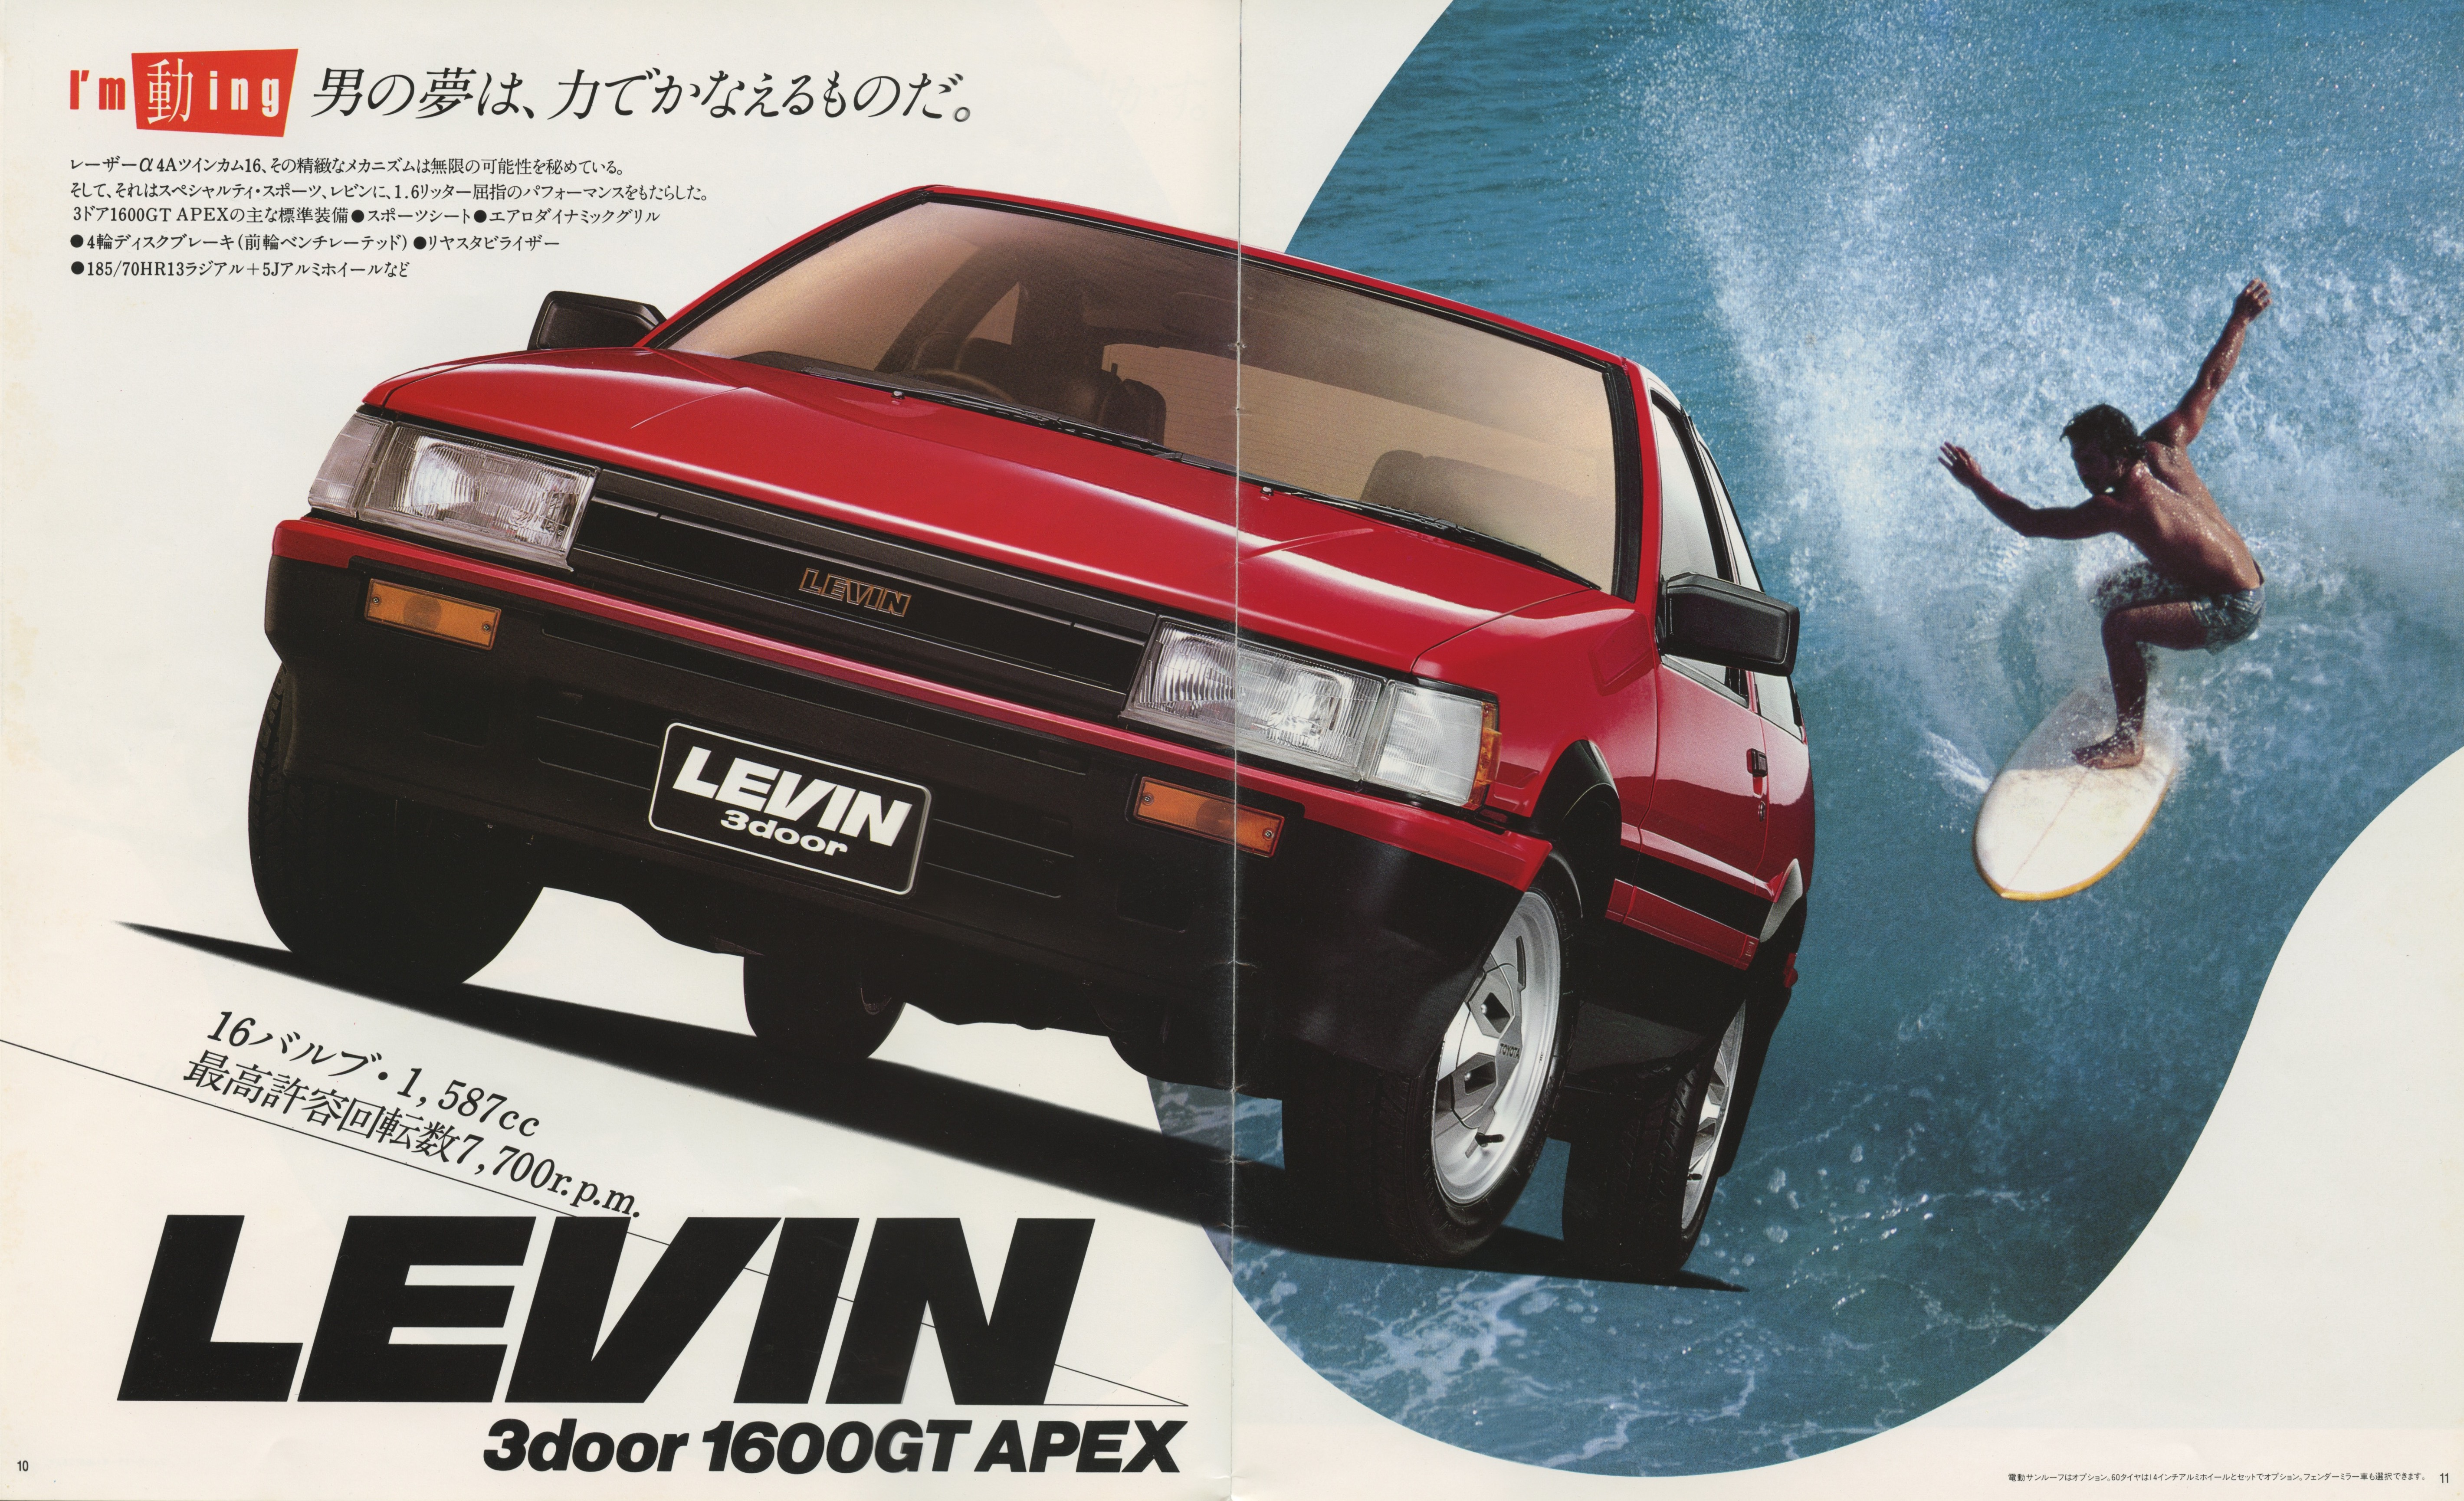 toyota-corolla-levin-ae86-brochure-page-10-11